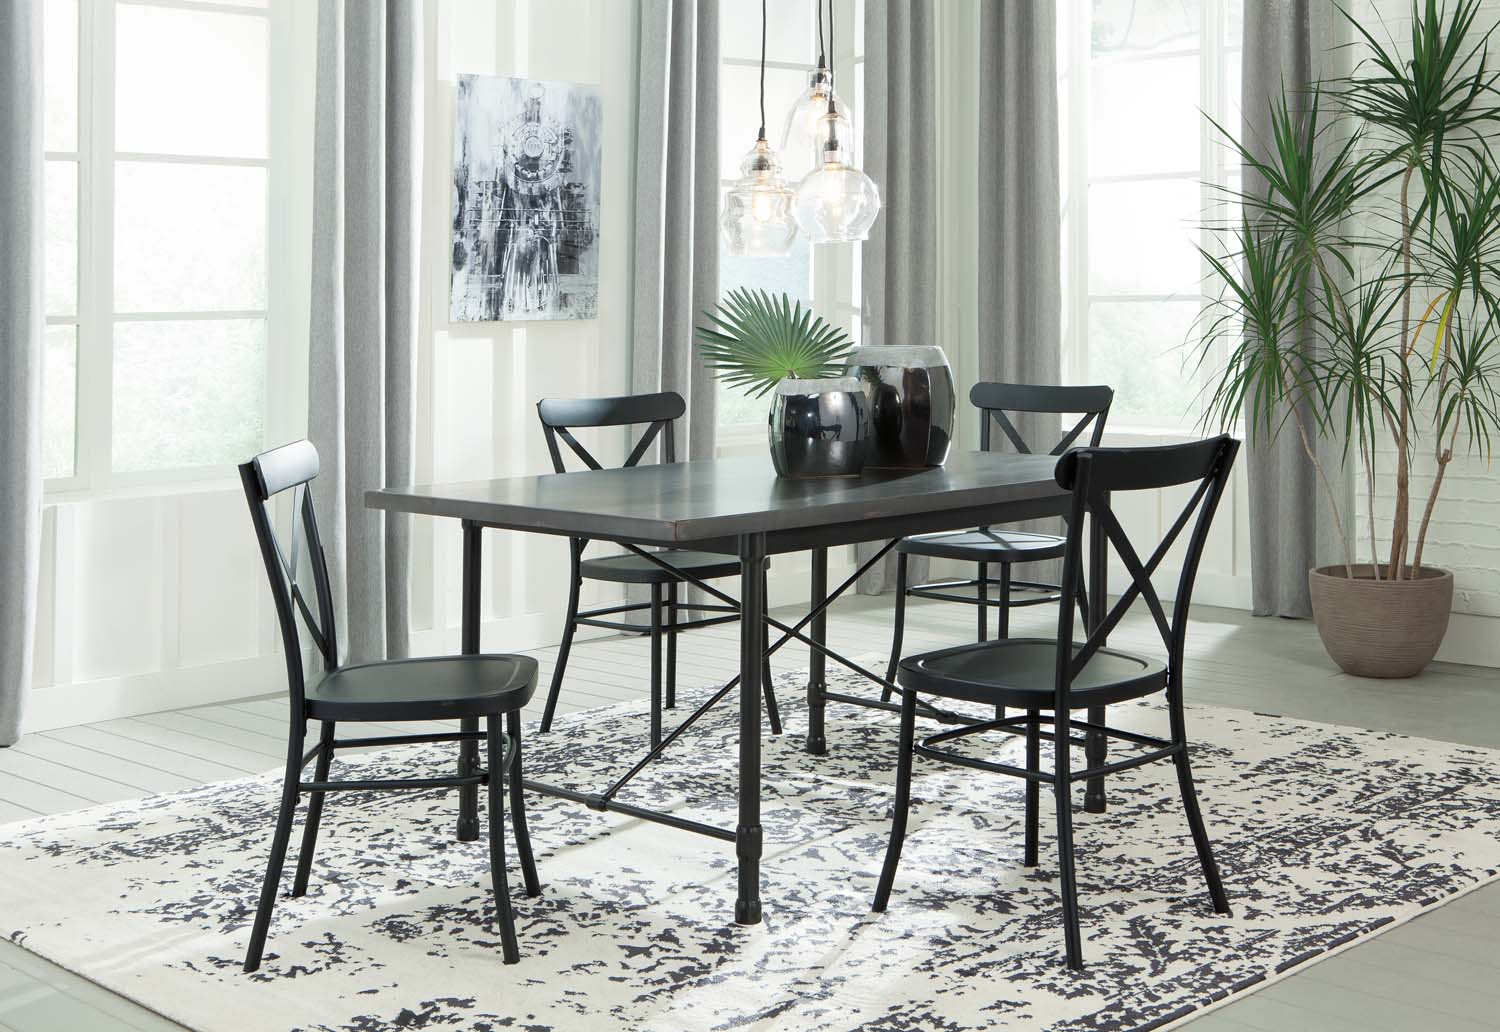 7 piece dining room set china cabinet minnona multi piece dining room set d400d8 in by ashley furniture conway ar